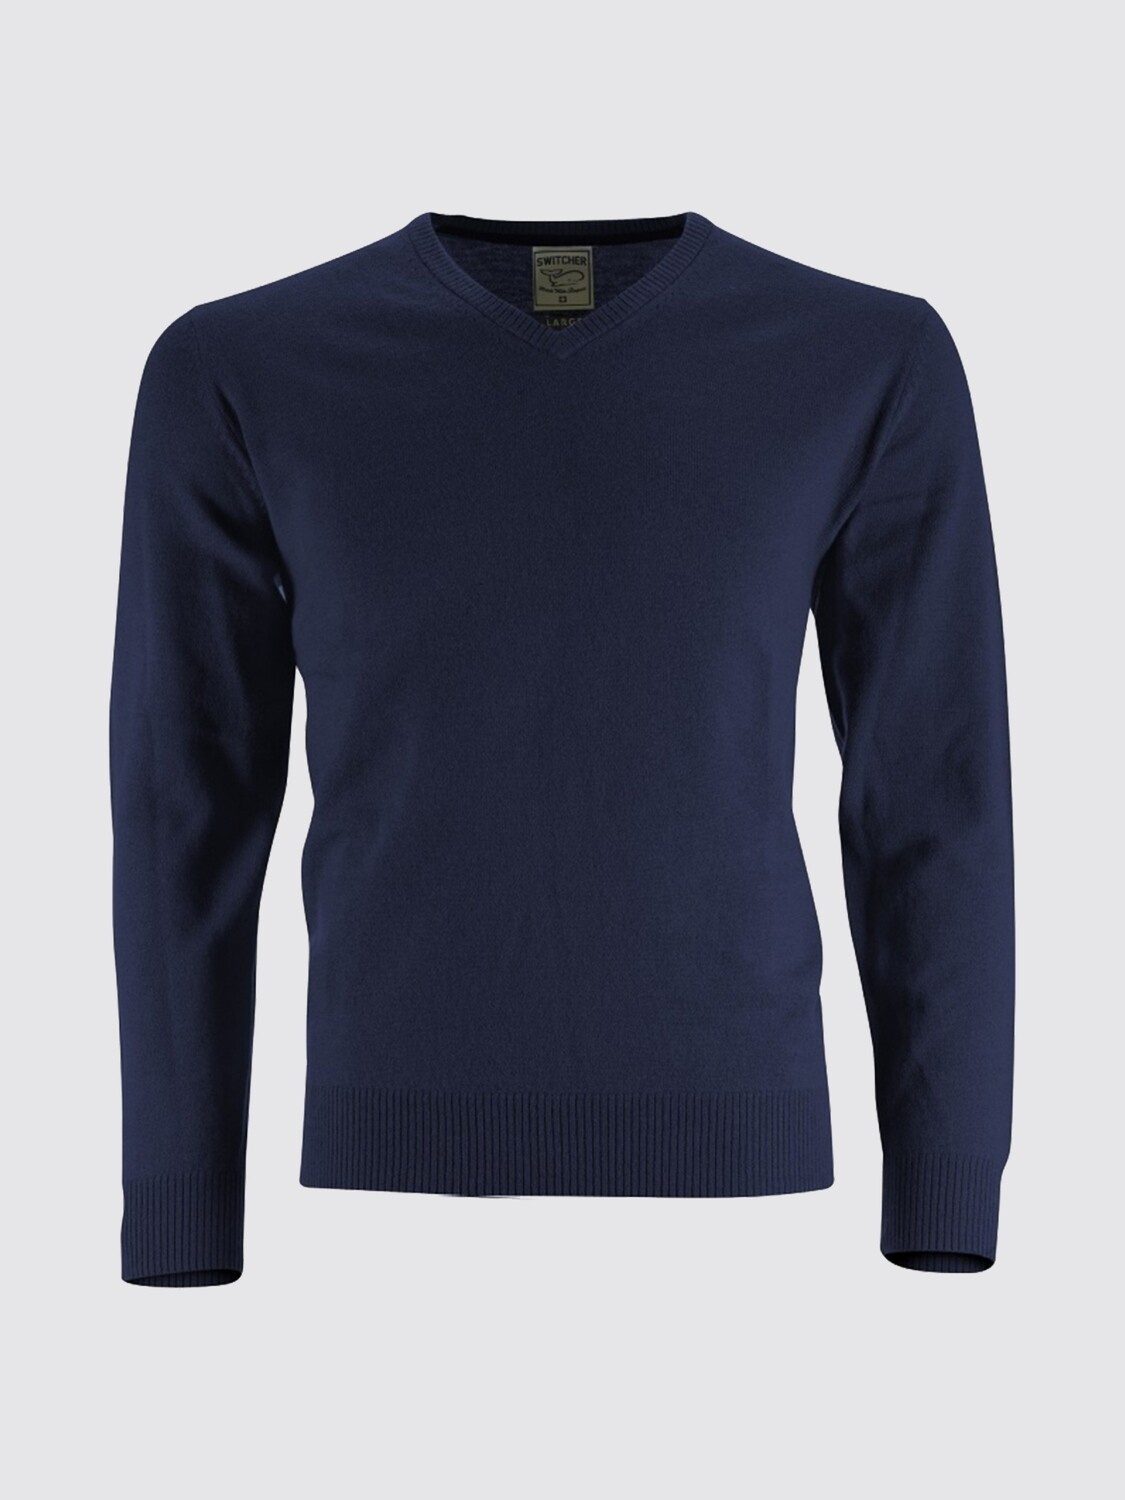 Switcher V-neck knitted sweater